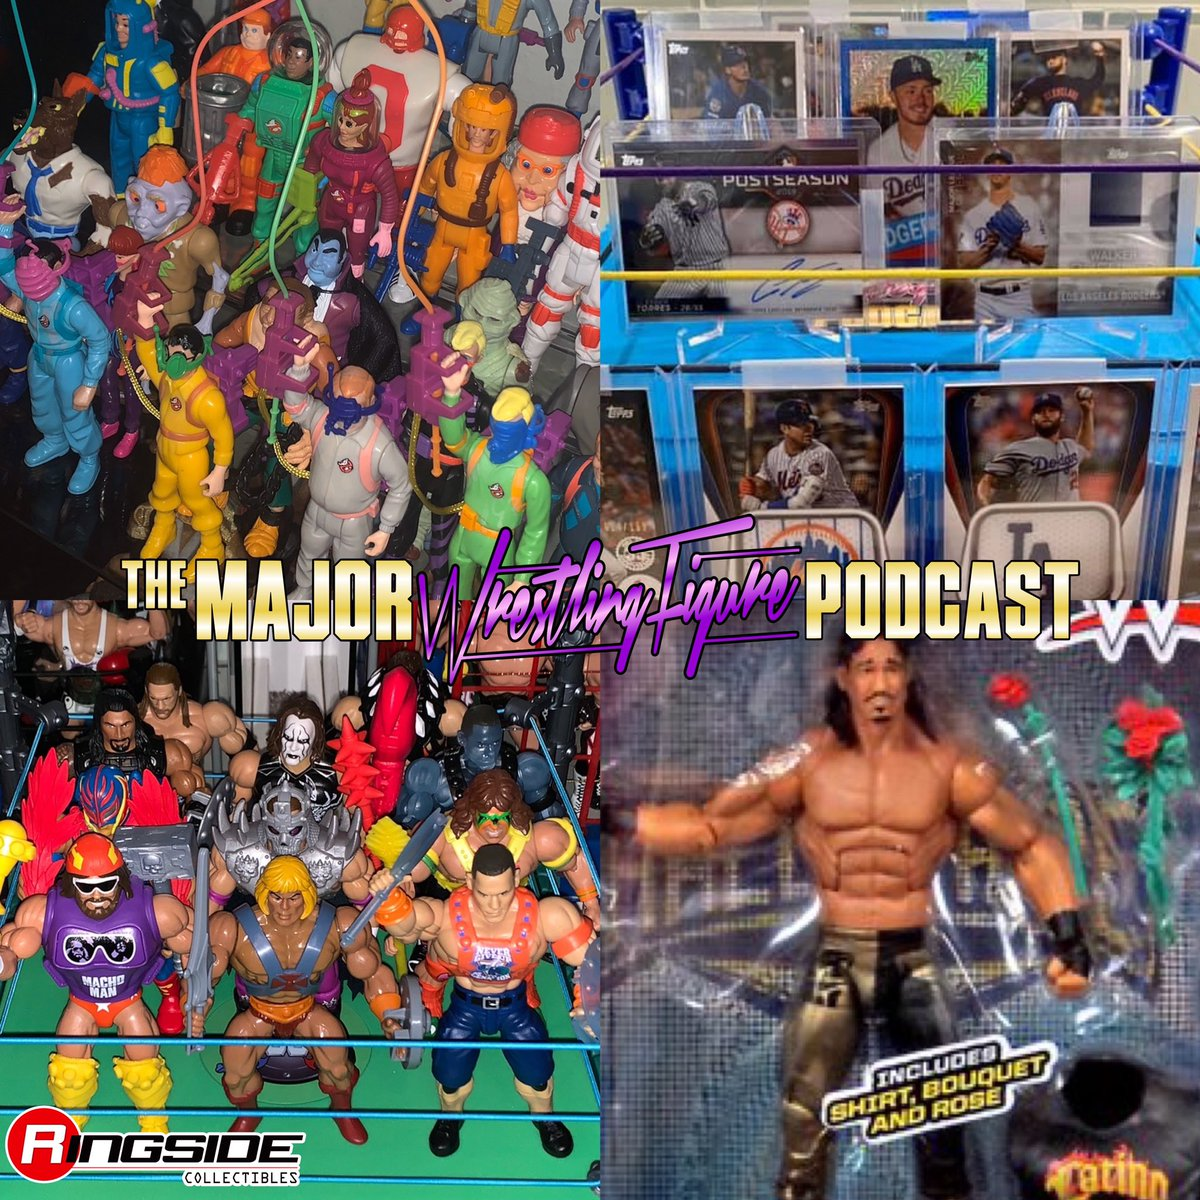 DOWNLOAD THIS WEEK'S @MajorWFPod! @TheCurtHawkins & @zackryder discuss unboxing Real @Ghostbusters figs, @mattel Masters of the @wwe Universe figs, their favorite Eddie Guerrero, more @Topps card breaks, & much more! LISTEN TO HEAR HOW TO WIN @RealPaigeWWE FROM @RingsideC!